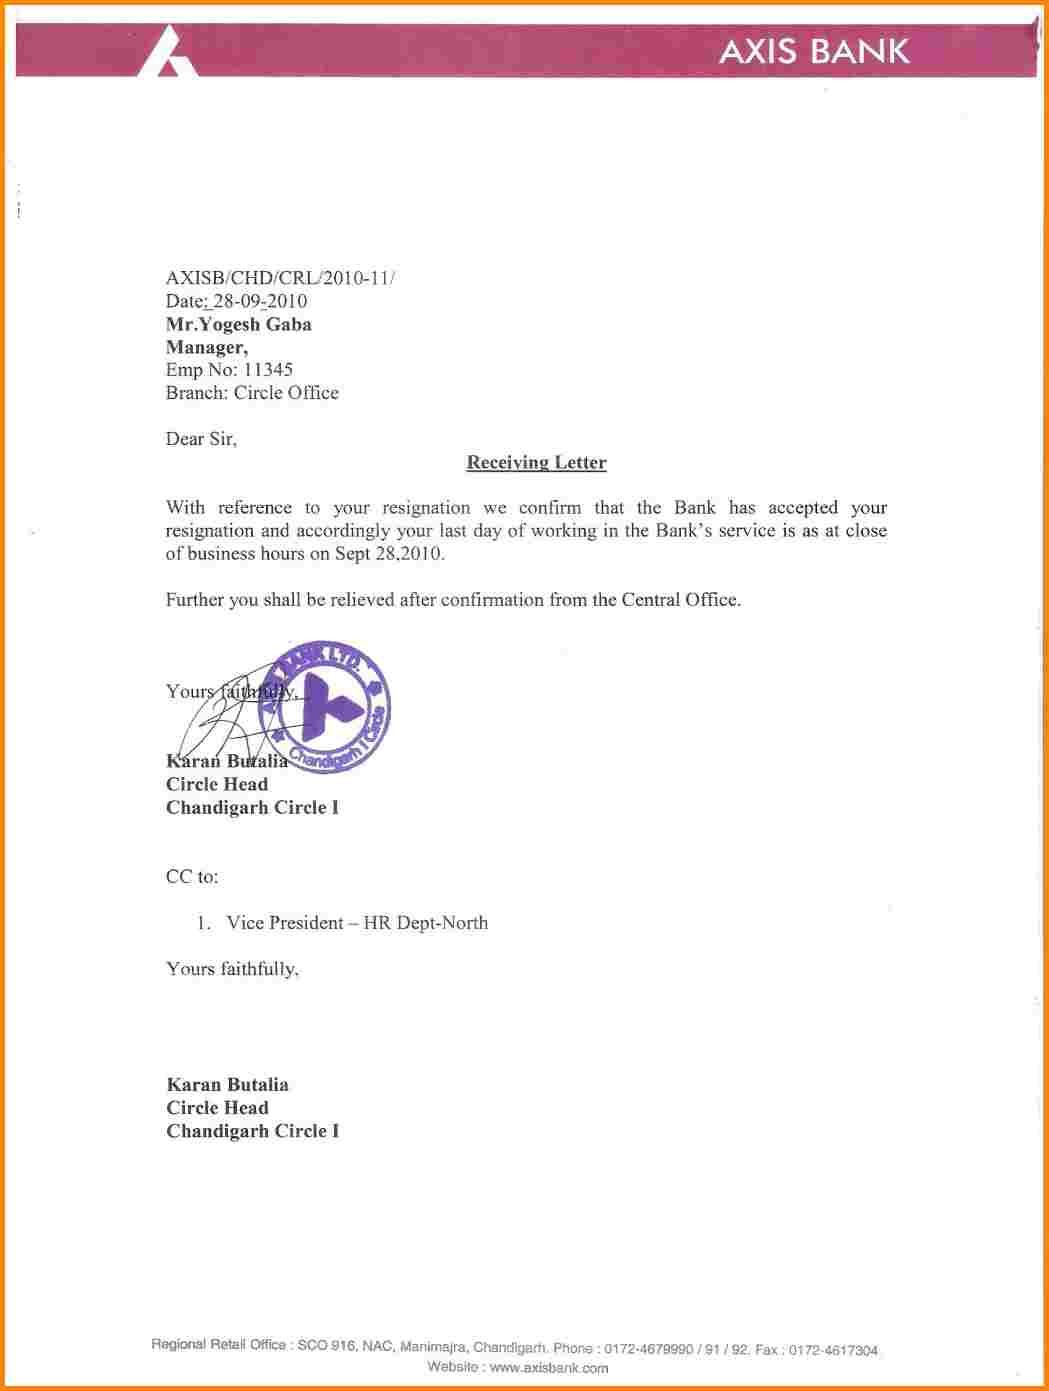 Noc Sample Bank Resignation Letter Format Noc For From Documentshub  Banks .